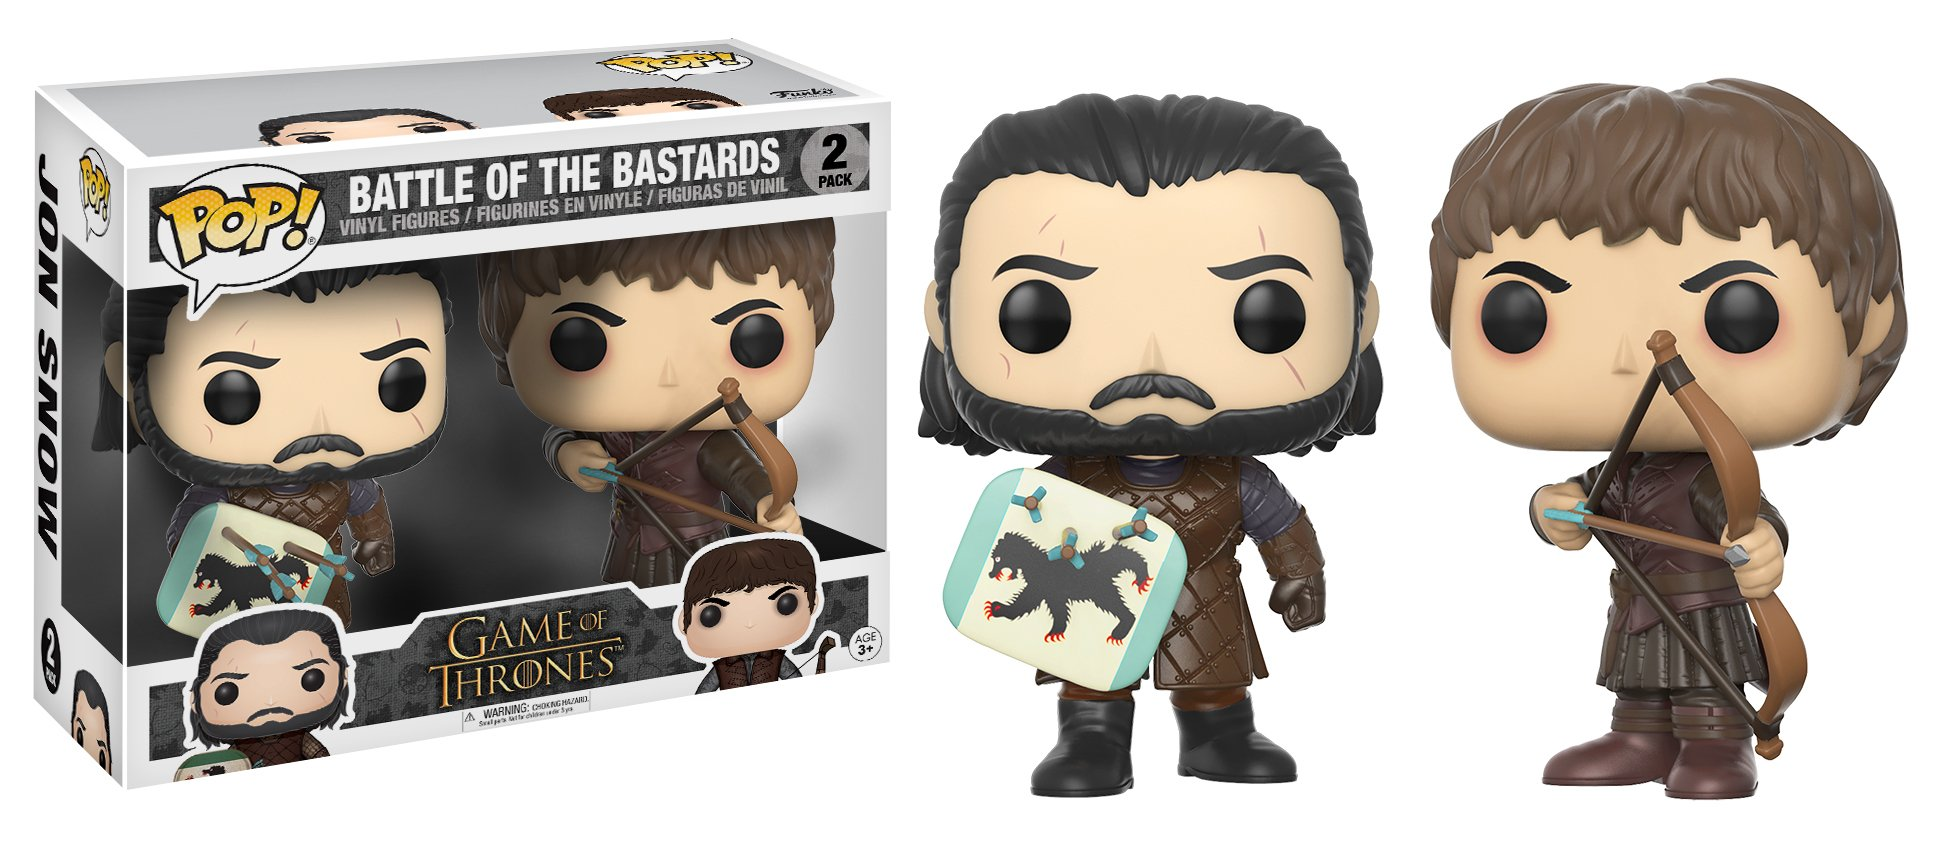 Funko Pop Game of Thrones Jon Snow & Ramsay Bolton Battle of the Bastards Collectible Figure